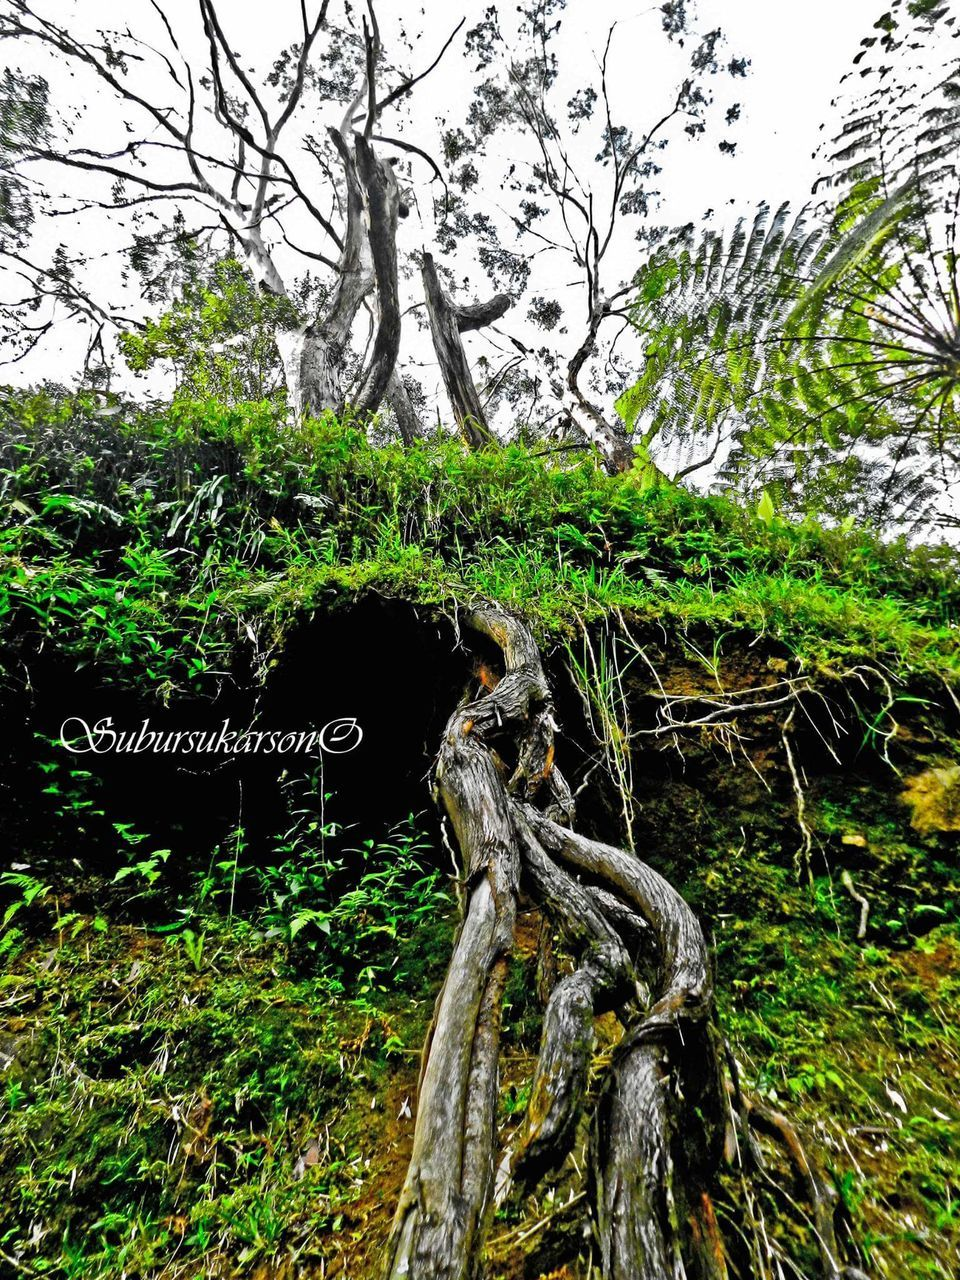 tree, tree trunk, text, growth, nature, no people, branch, day, outdoors, green color, beauty in nature, grass, close-up, dead tree